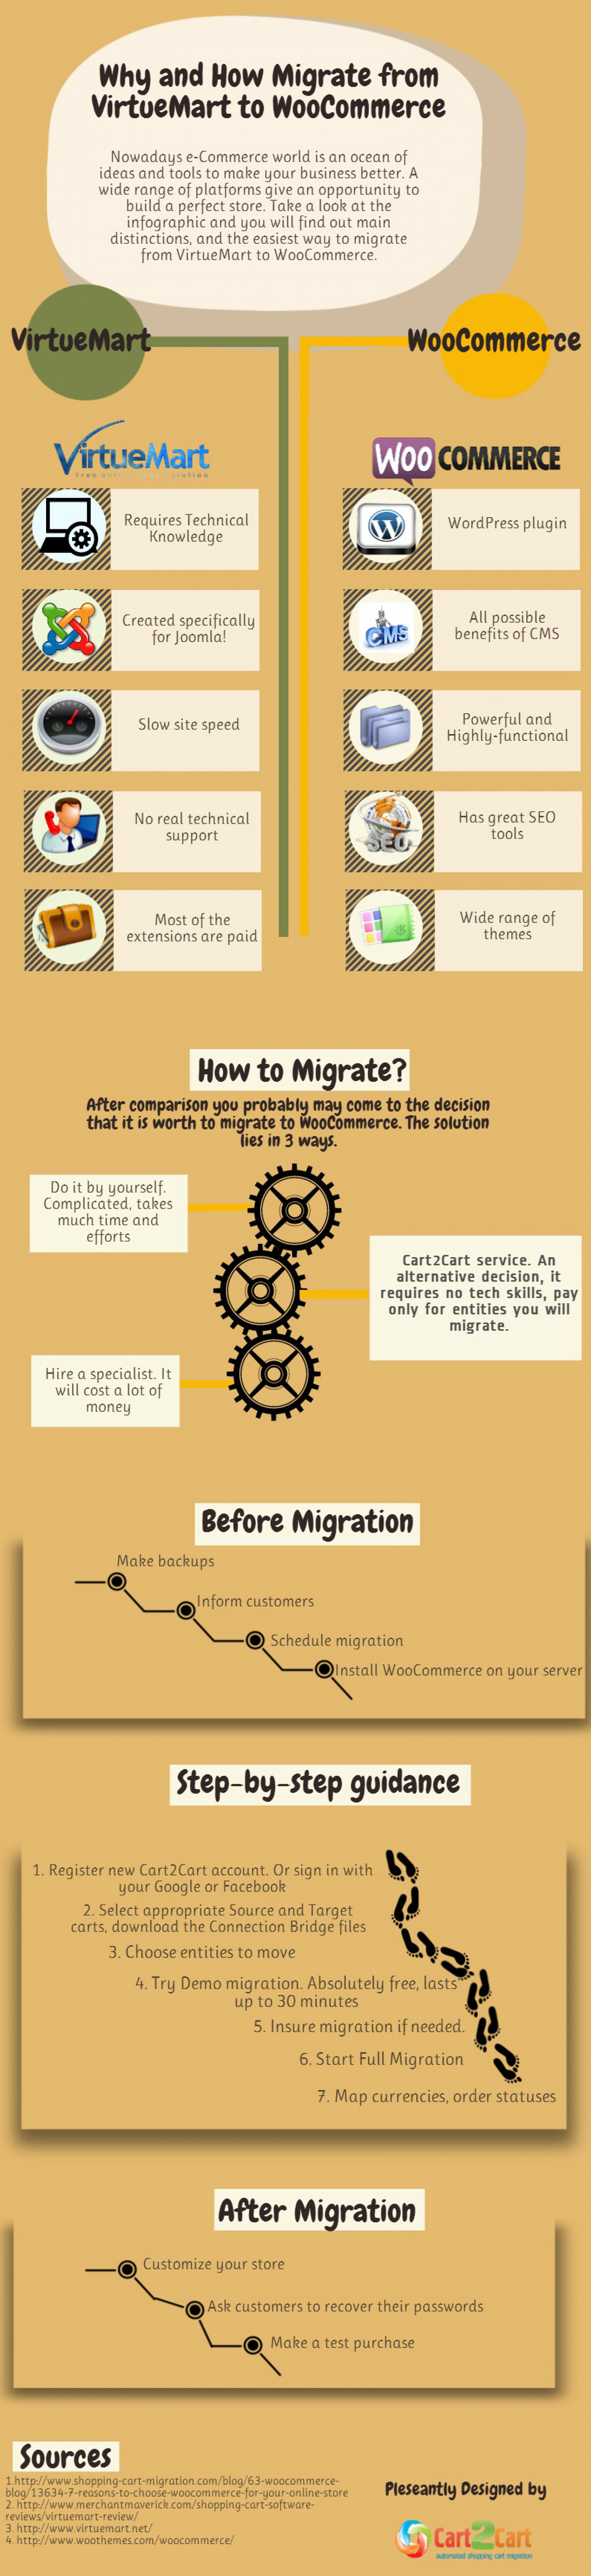 Why and How Migrate from VirtueMart to WooCommerce Infographic